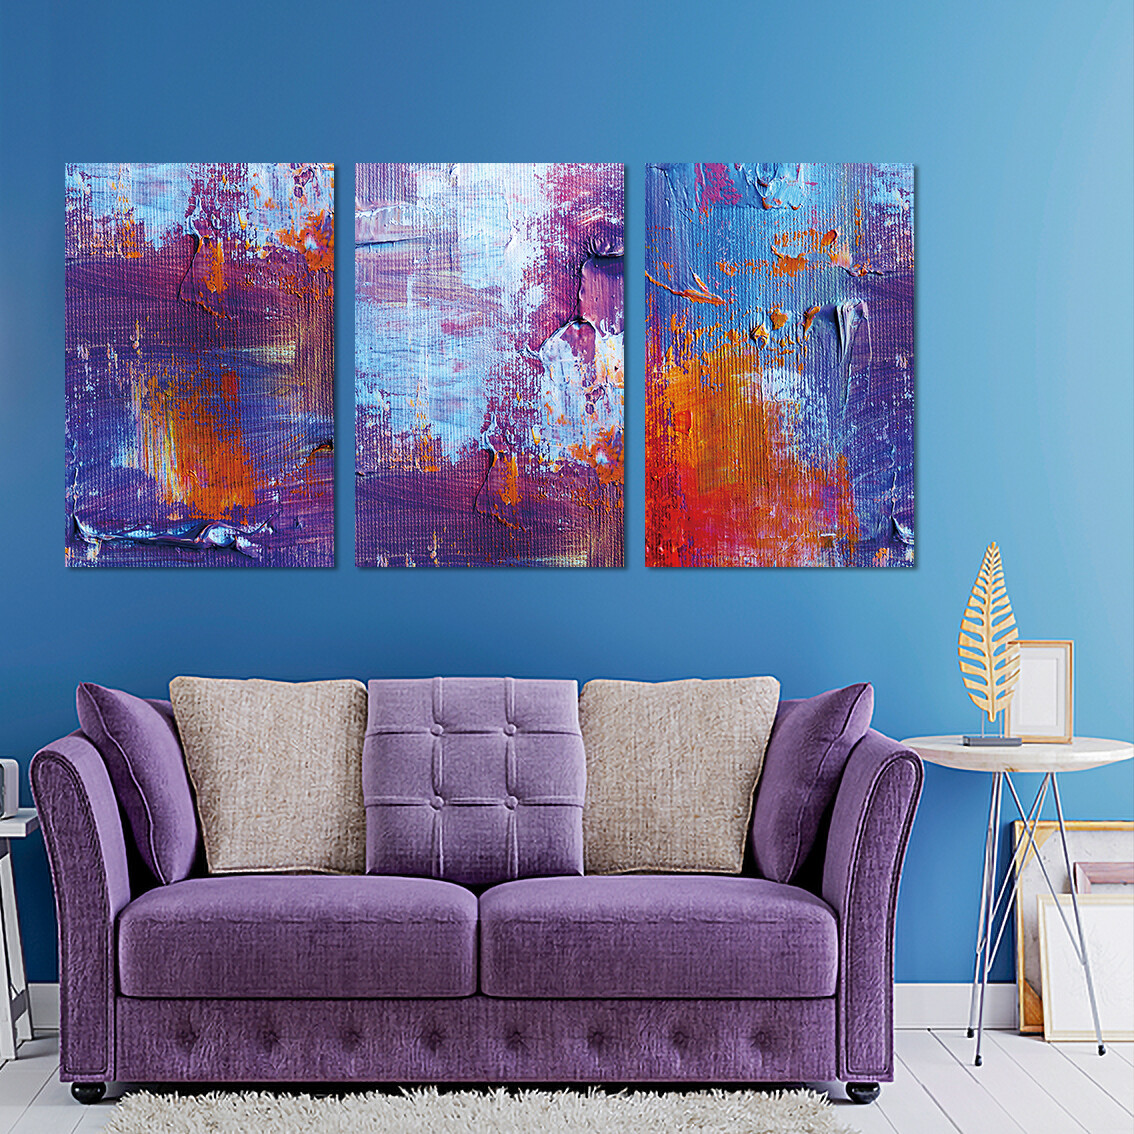 Colour Texture Abstract  - Modern Luxury Wall art Printed on Acrylic Glass - Frameless and Ready to Hang